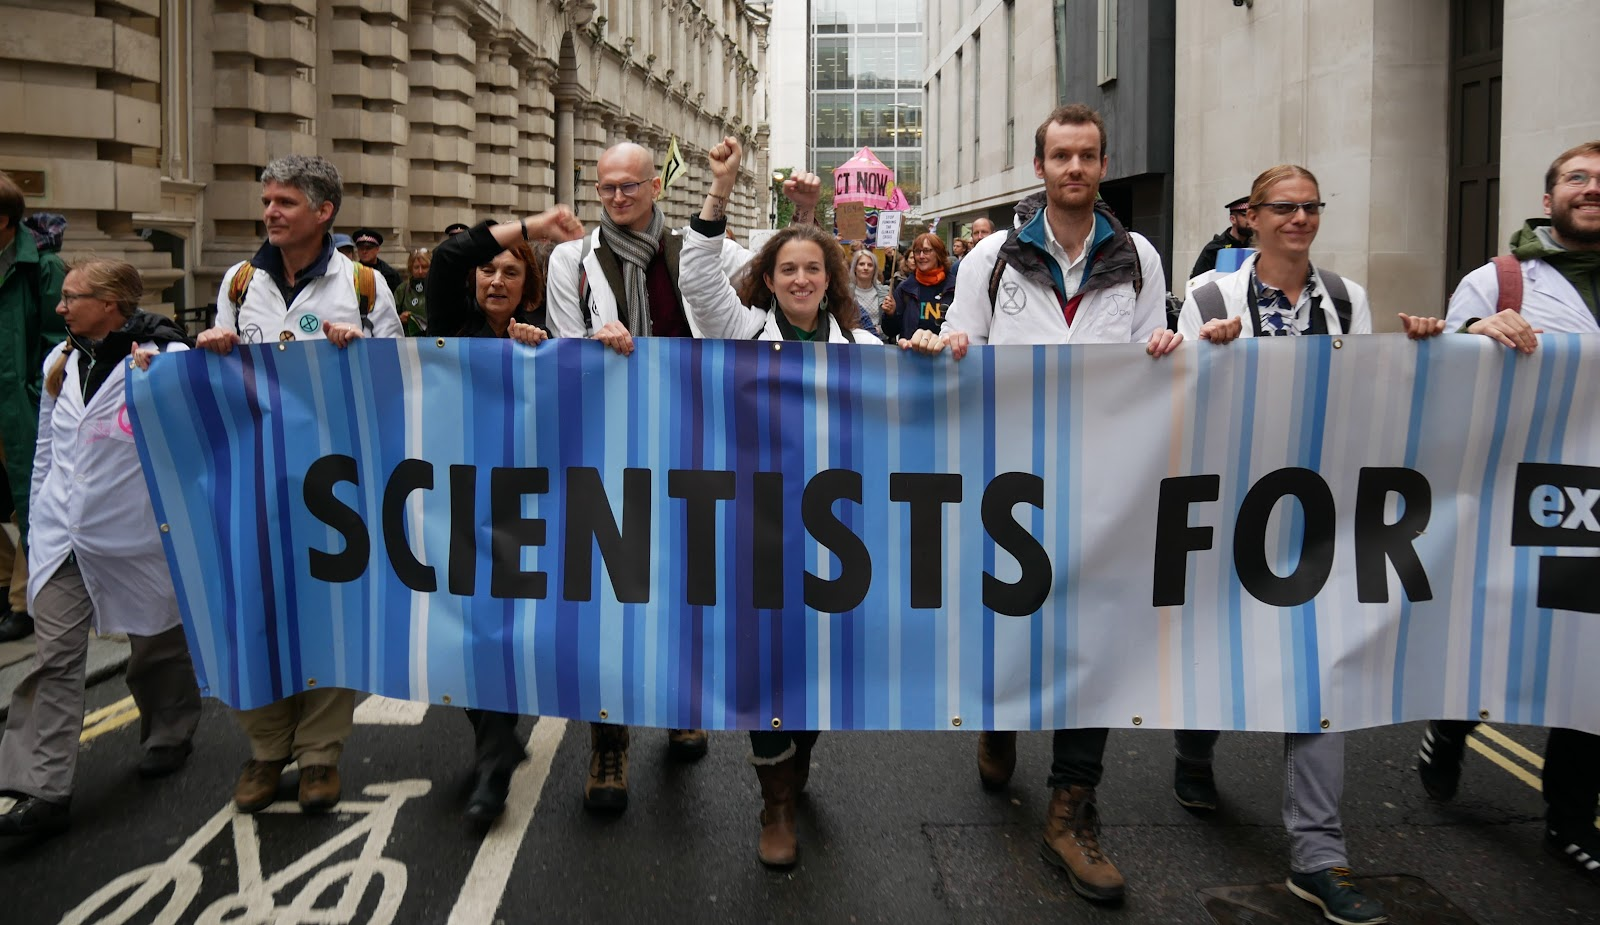 Scientists for XR wearing lab coats, and marching with an XR banner.